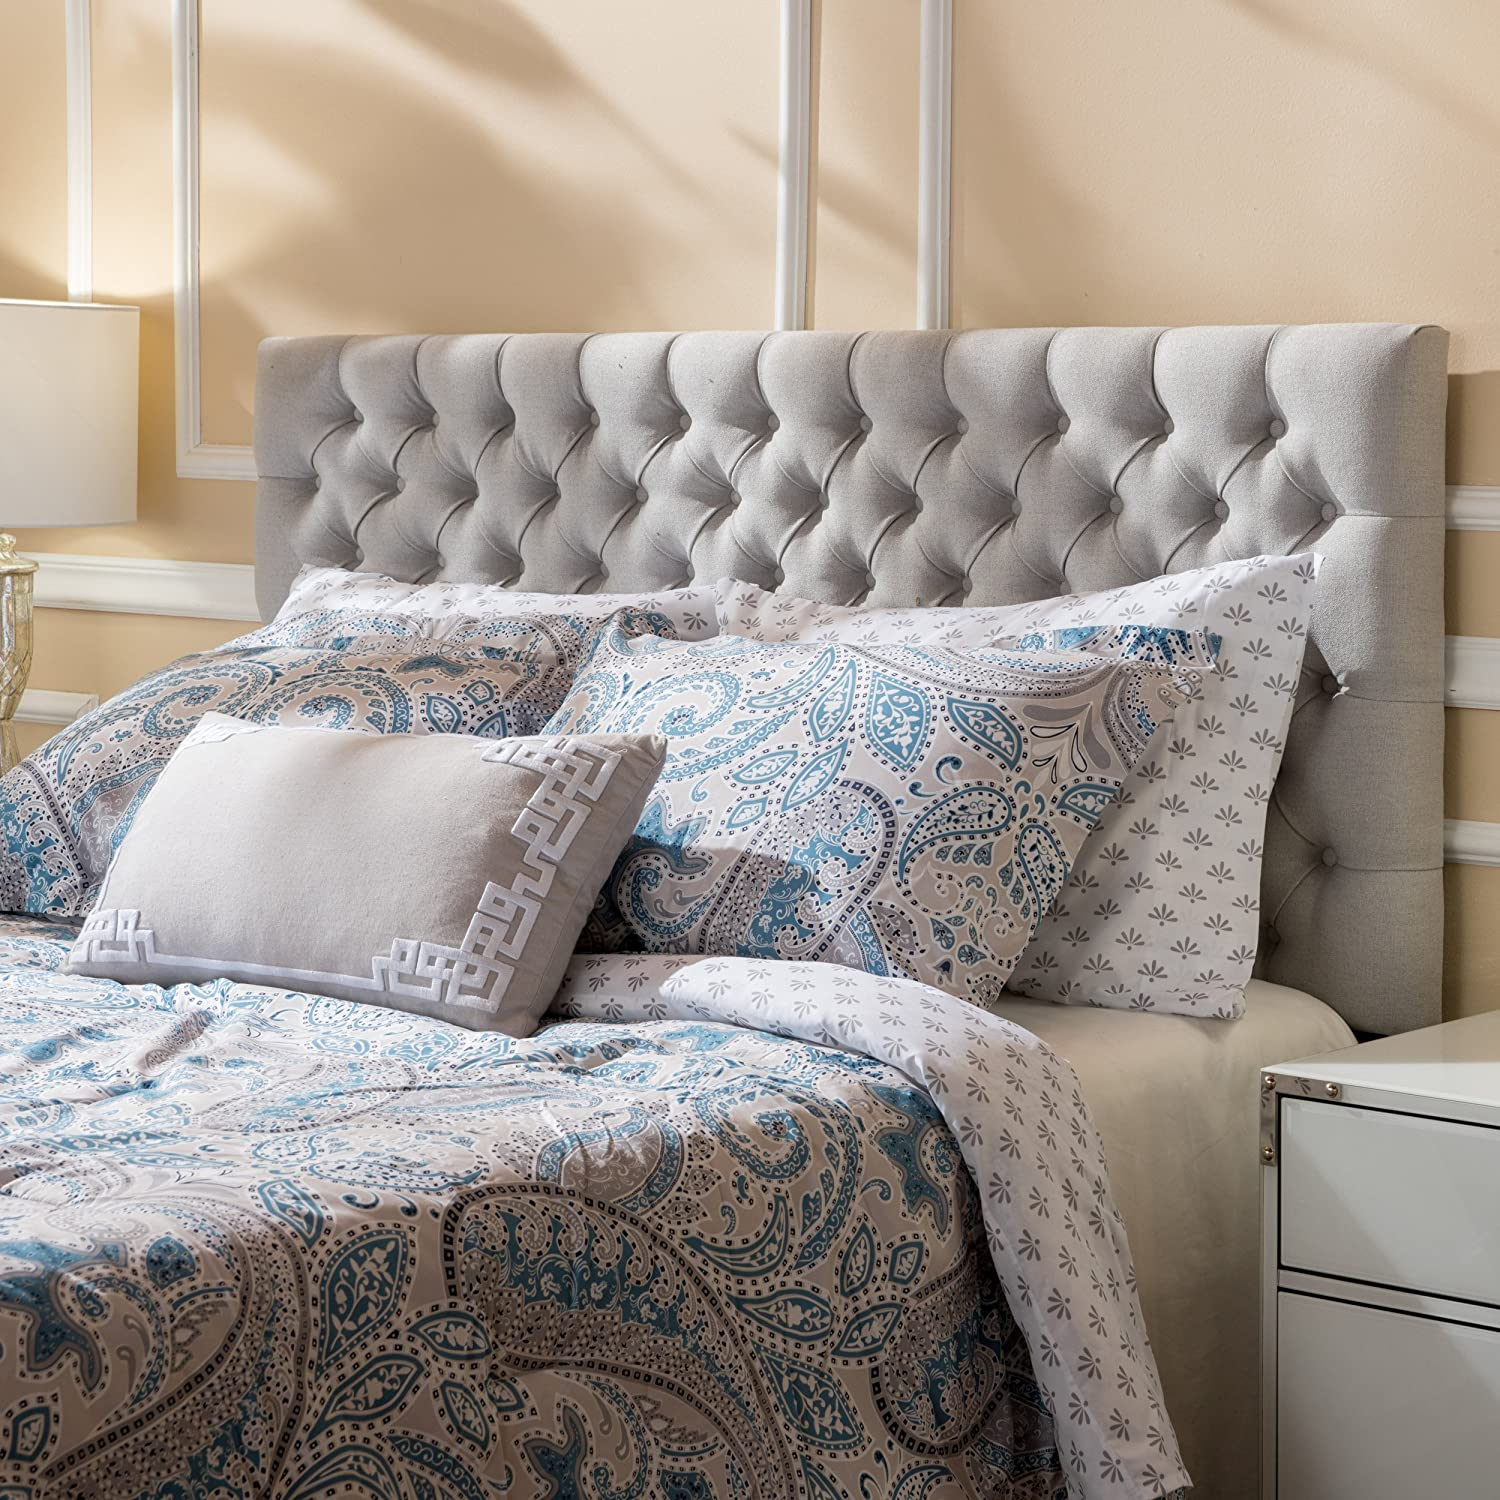 How To Choose A Bed Board For Your Bedroom